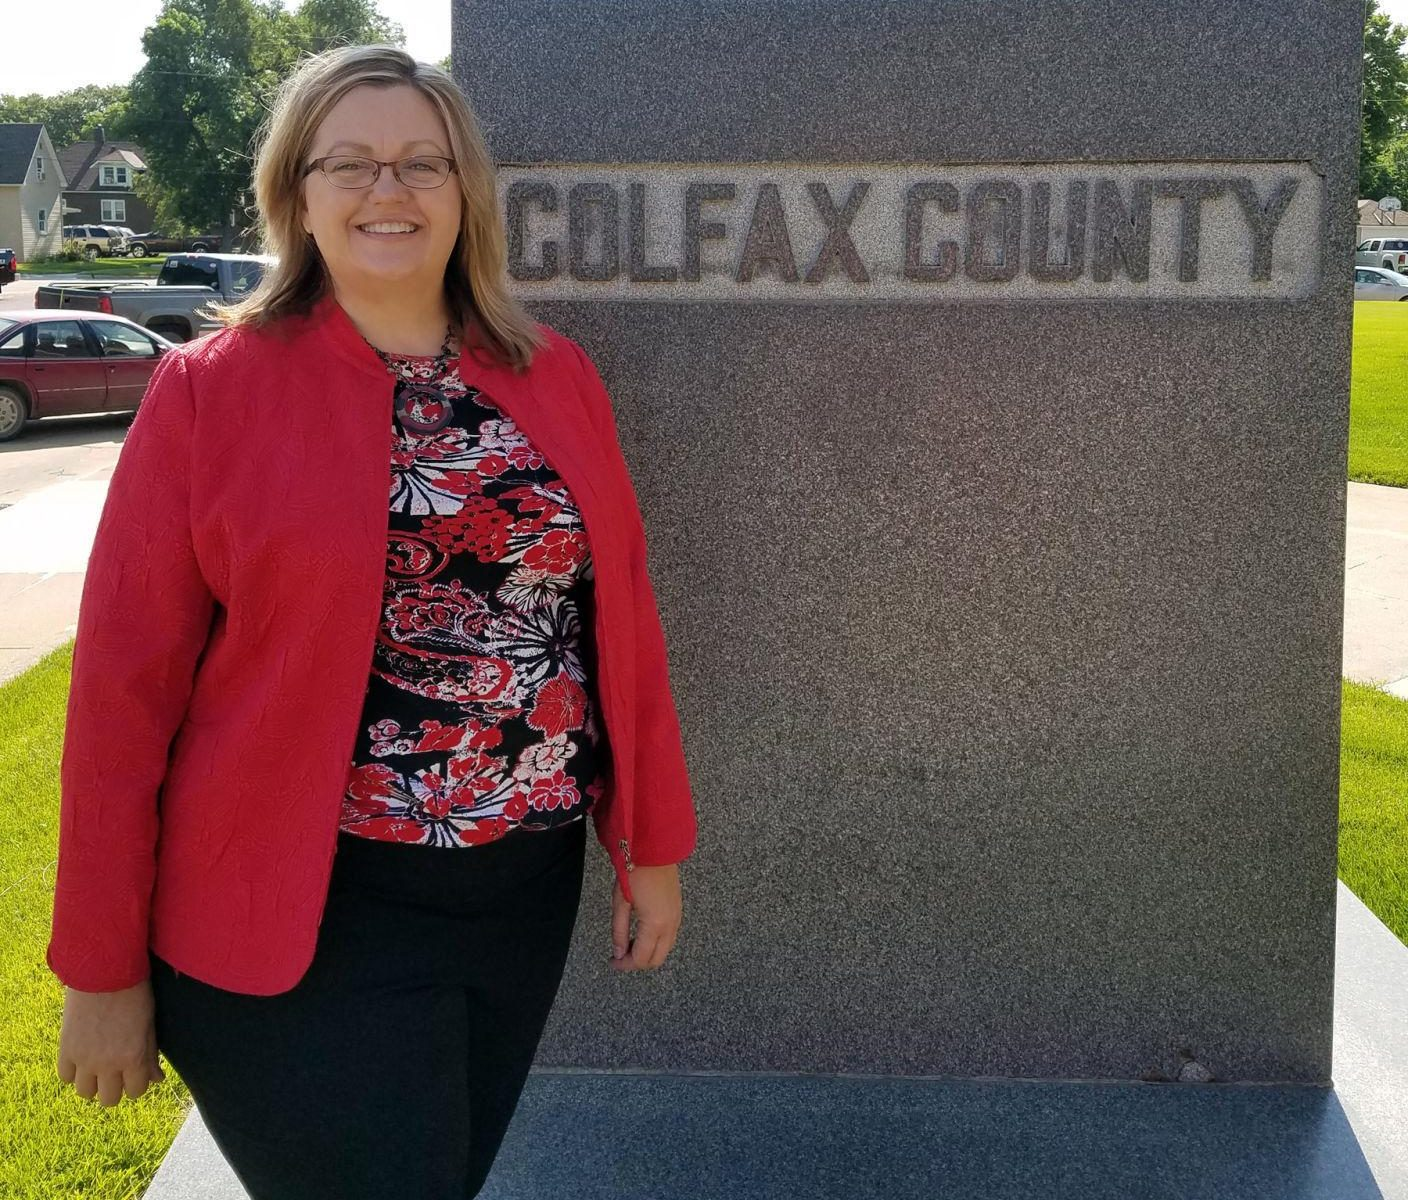 Drug court offers aid: Program aims to help defendants truly rebound